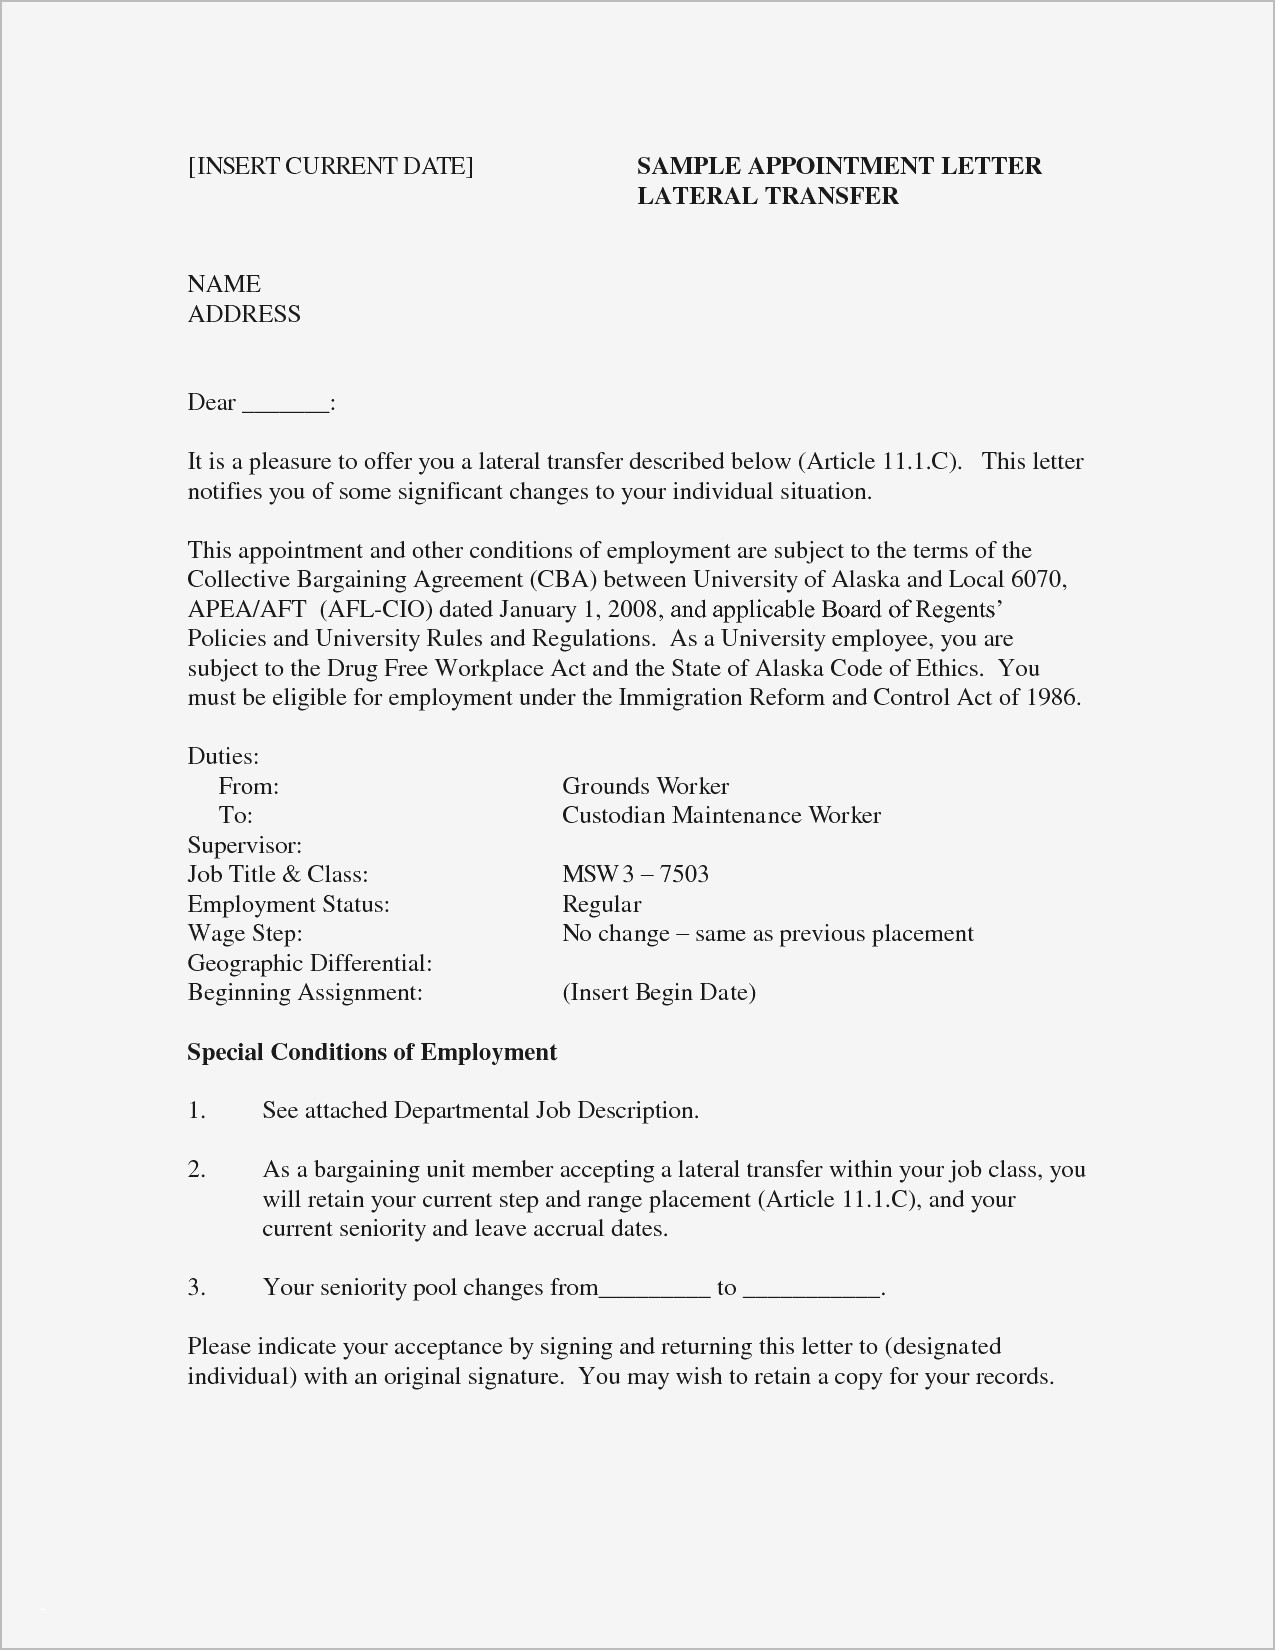 Reference Request Letter Template - Providing A Reference Template